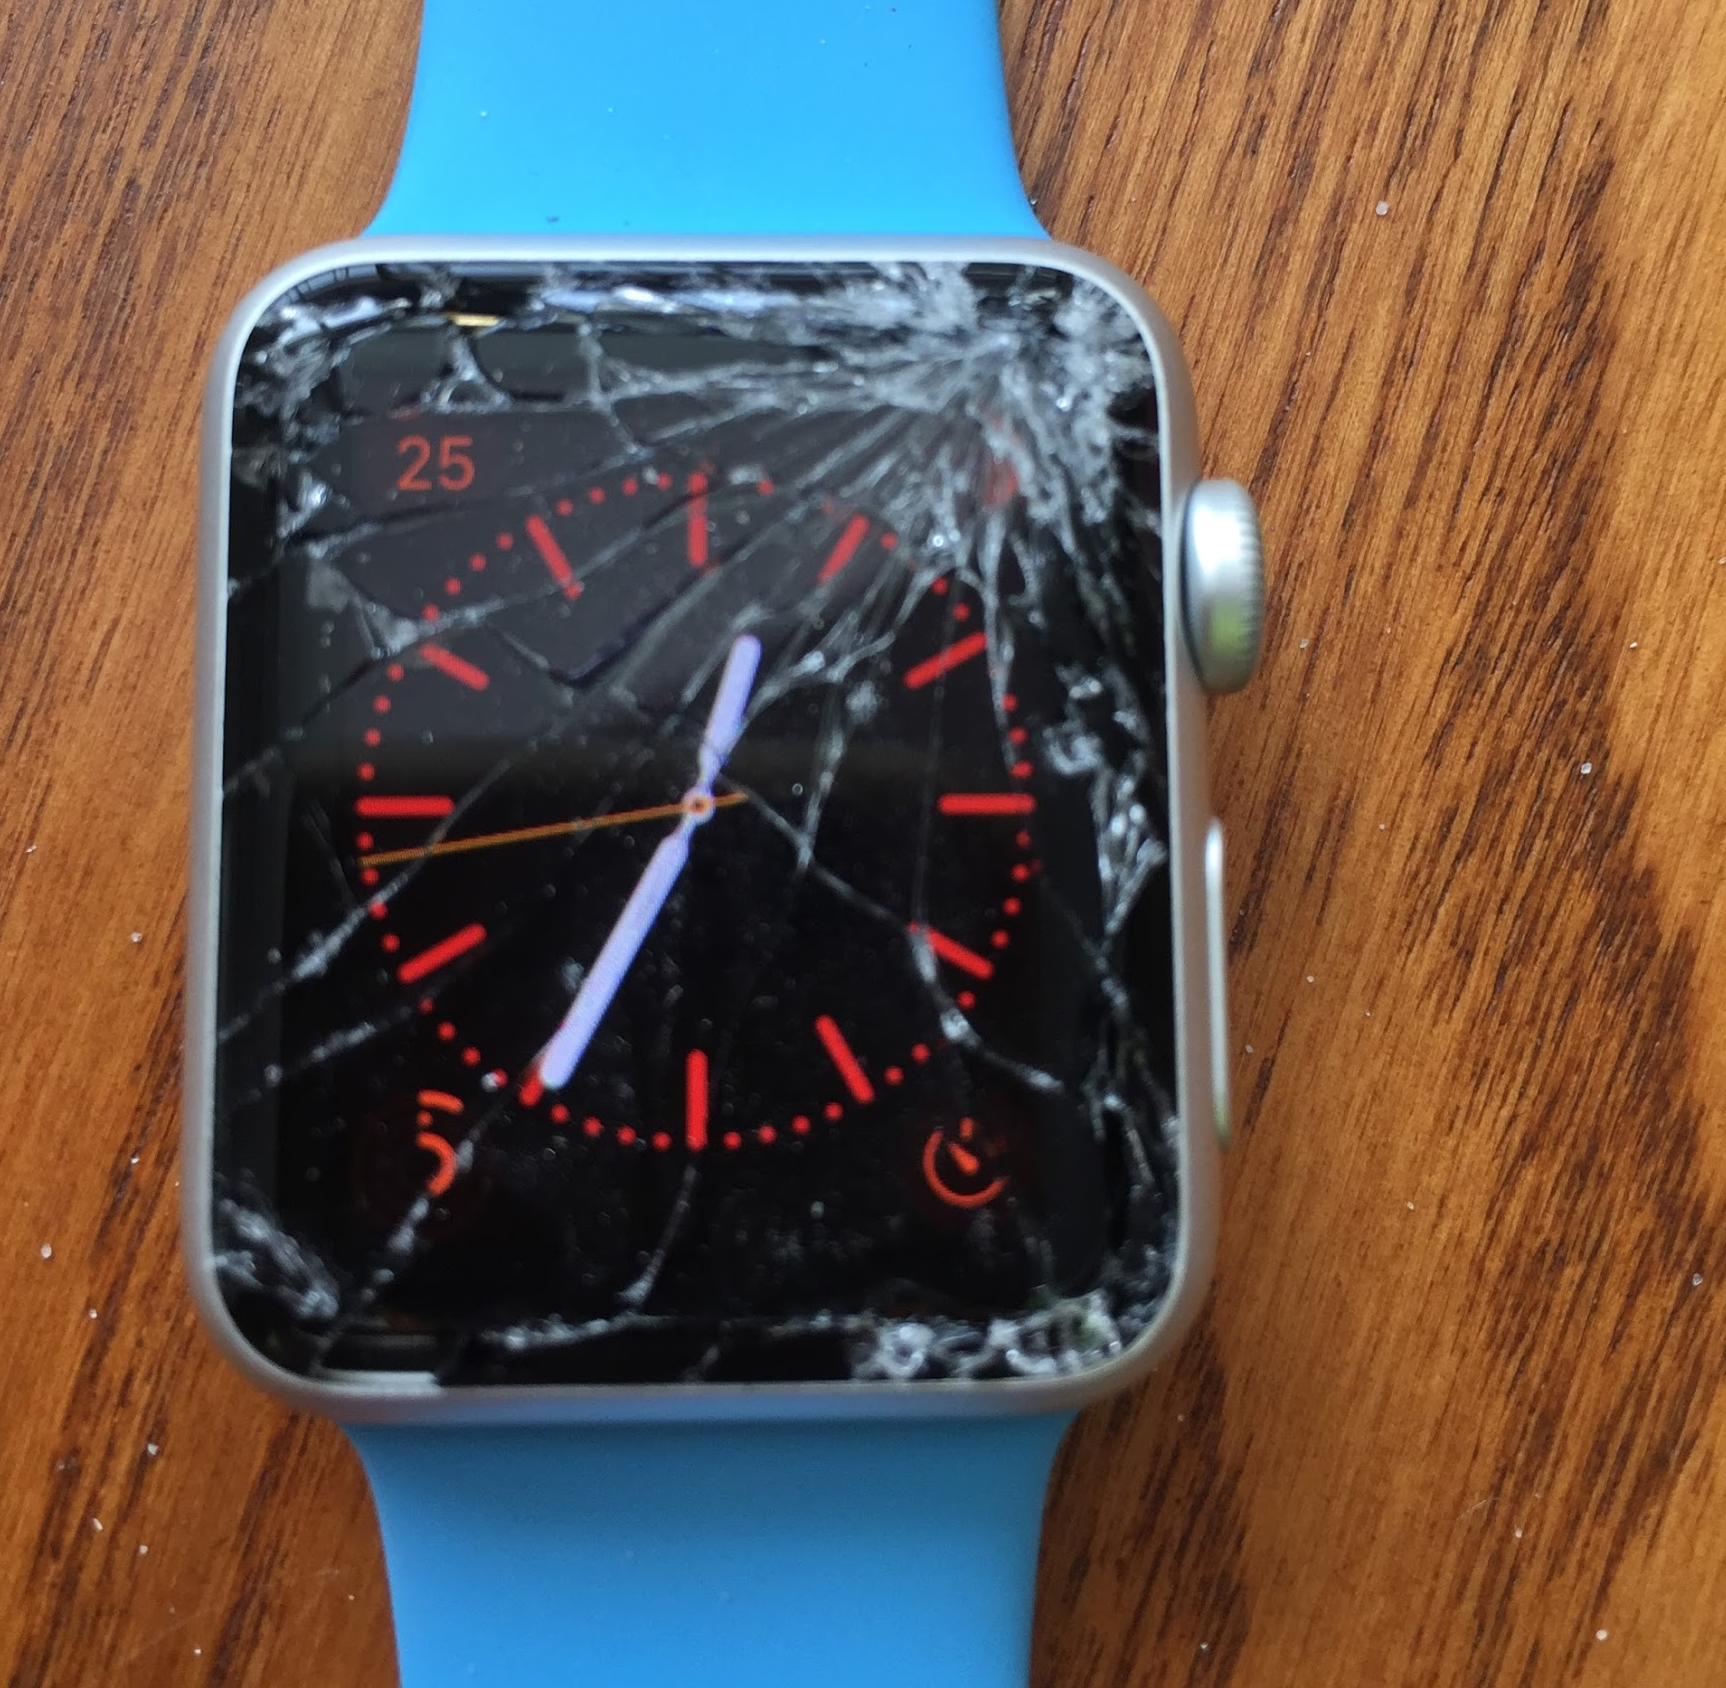 Crashed Apple Watch